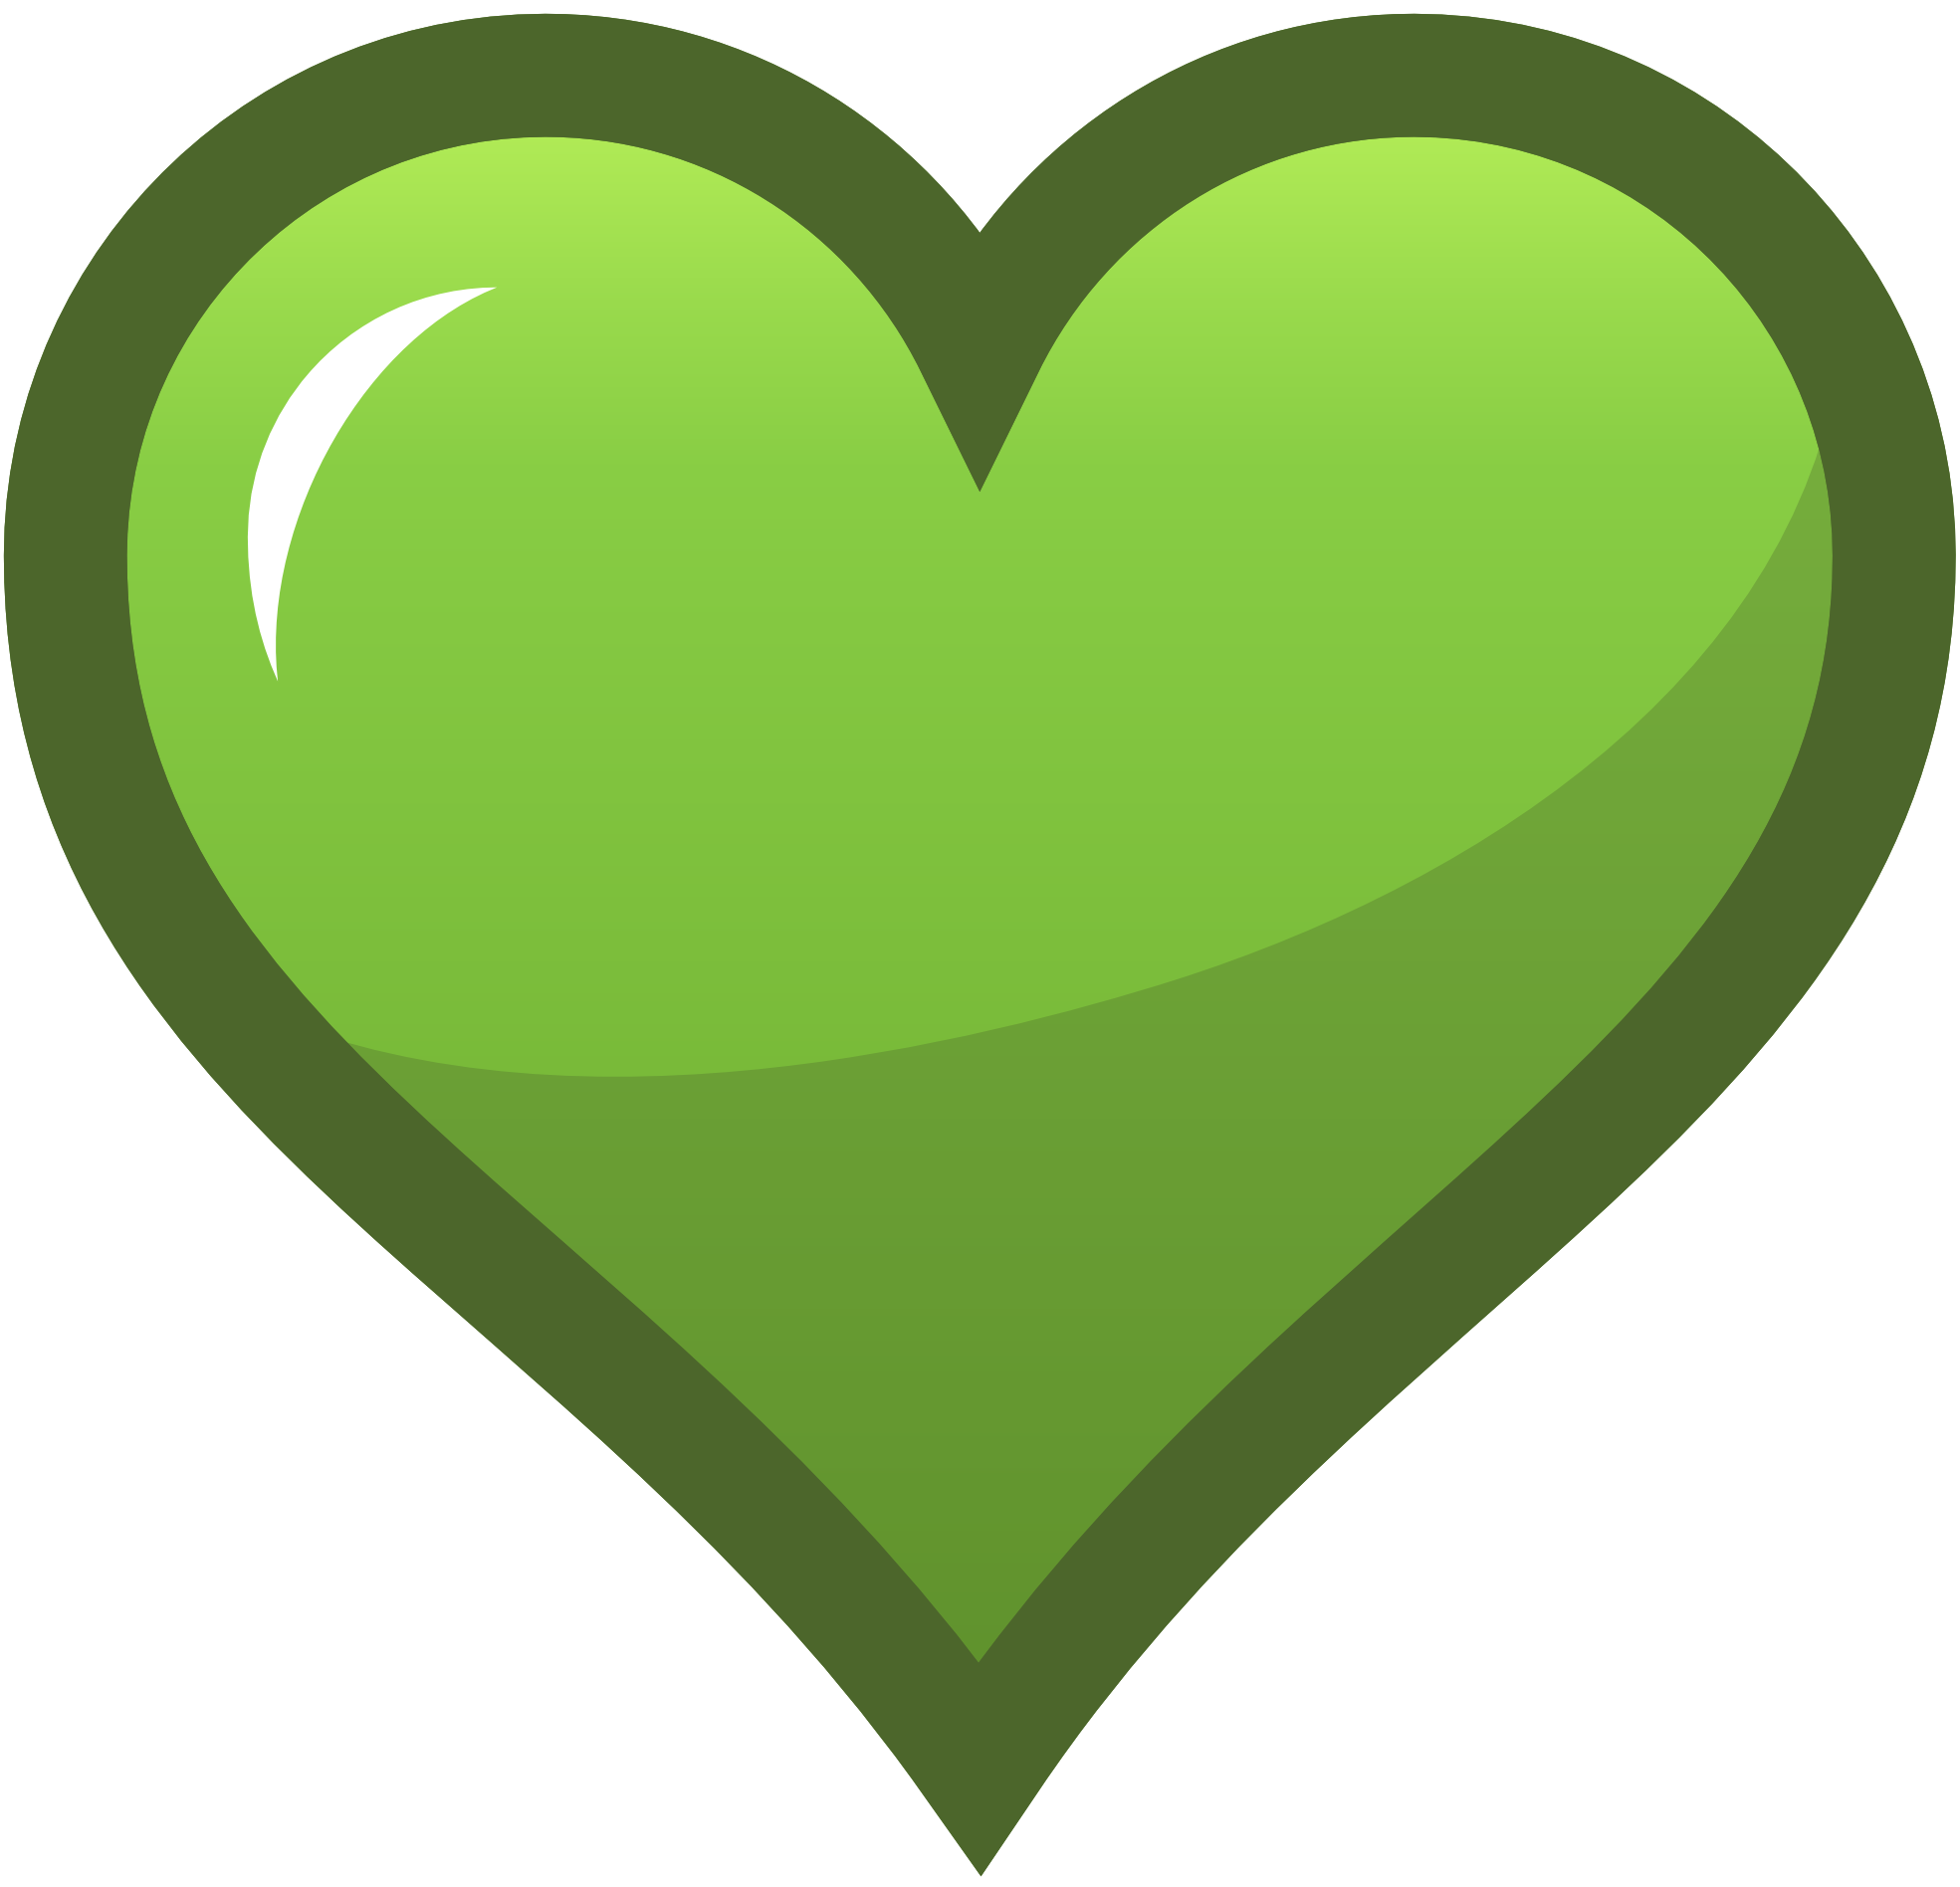 green hearts background - photo #48